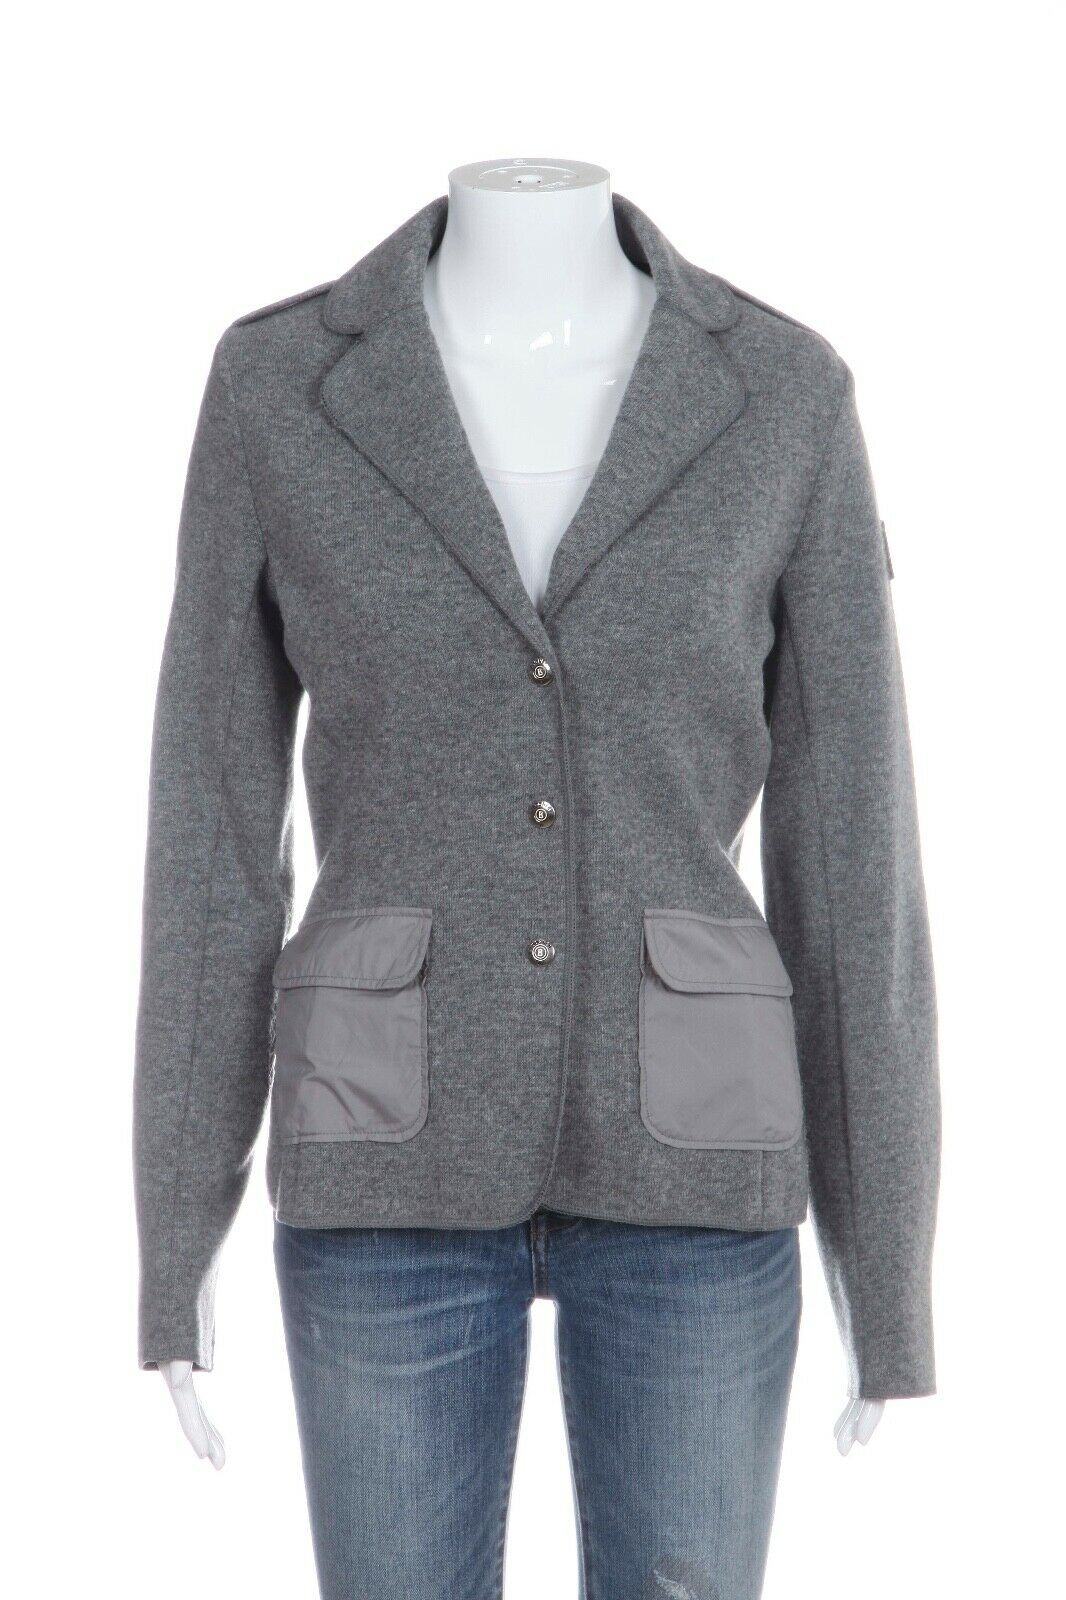 BOGNER Knit Fitted Blazer Jacket Size 36 (S)